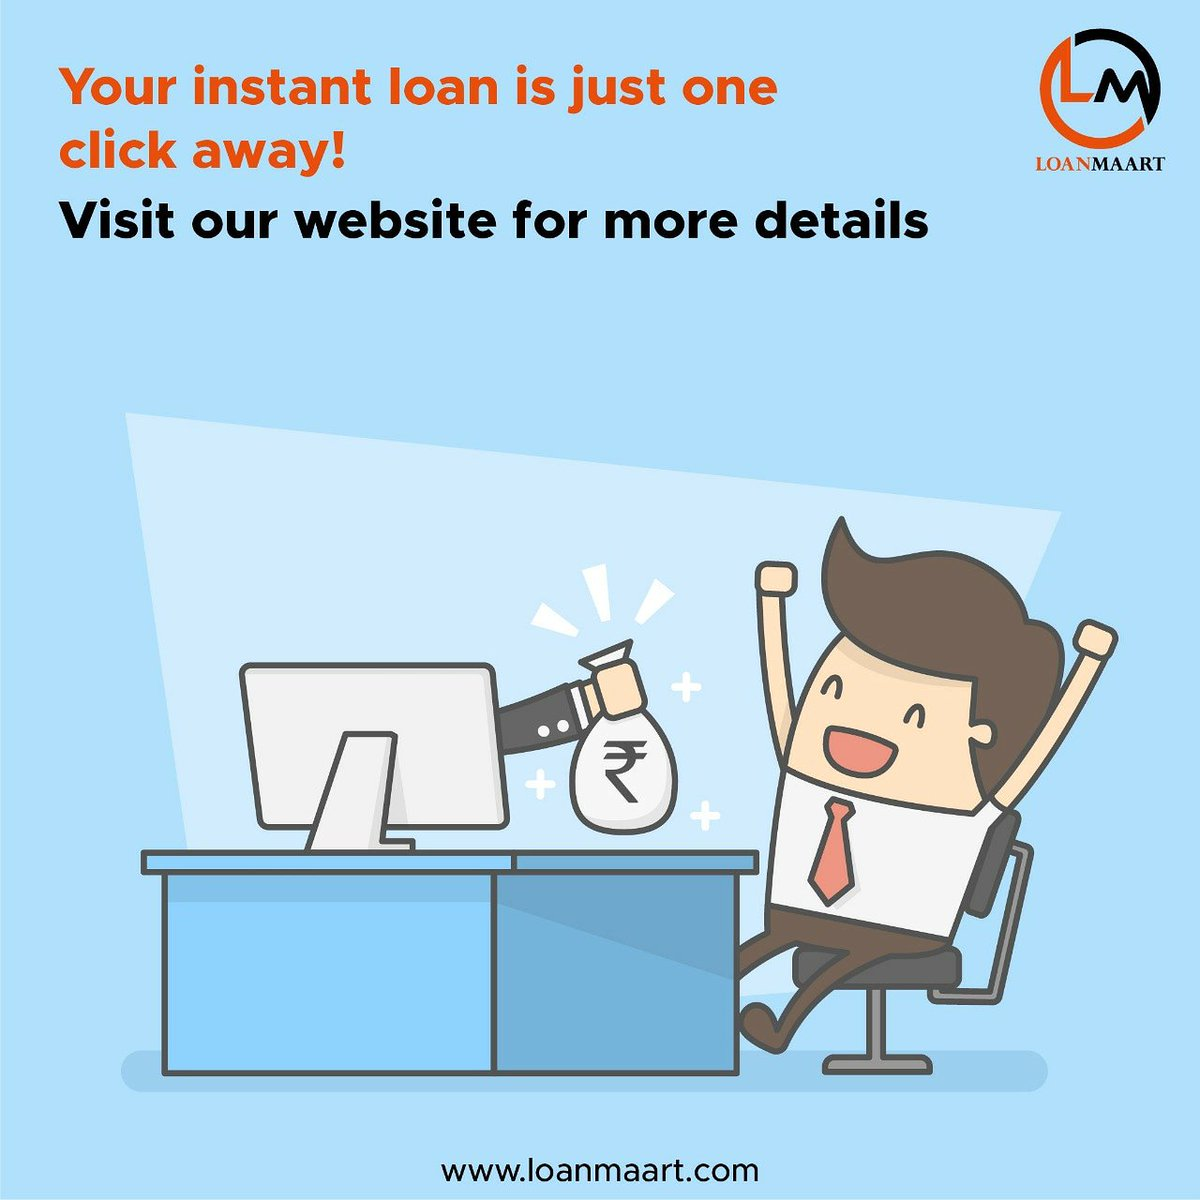 One Click Loan >> Loanmaart On Twitter Your Instant Loan Is Just One Click